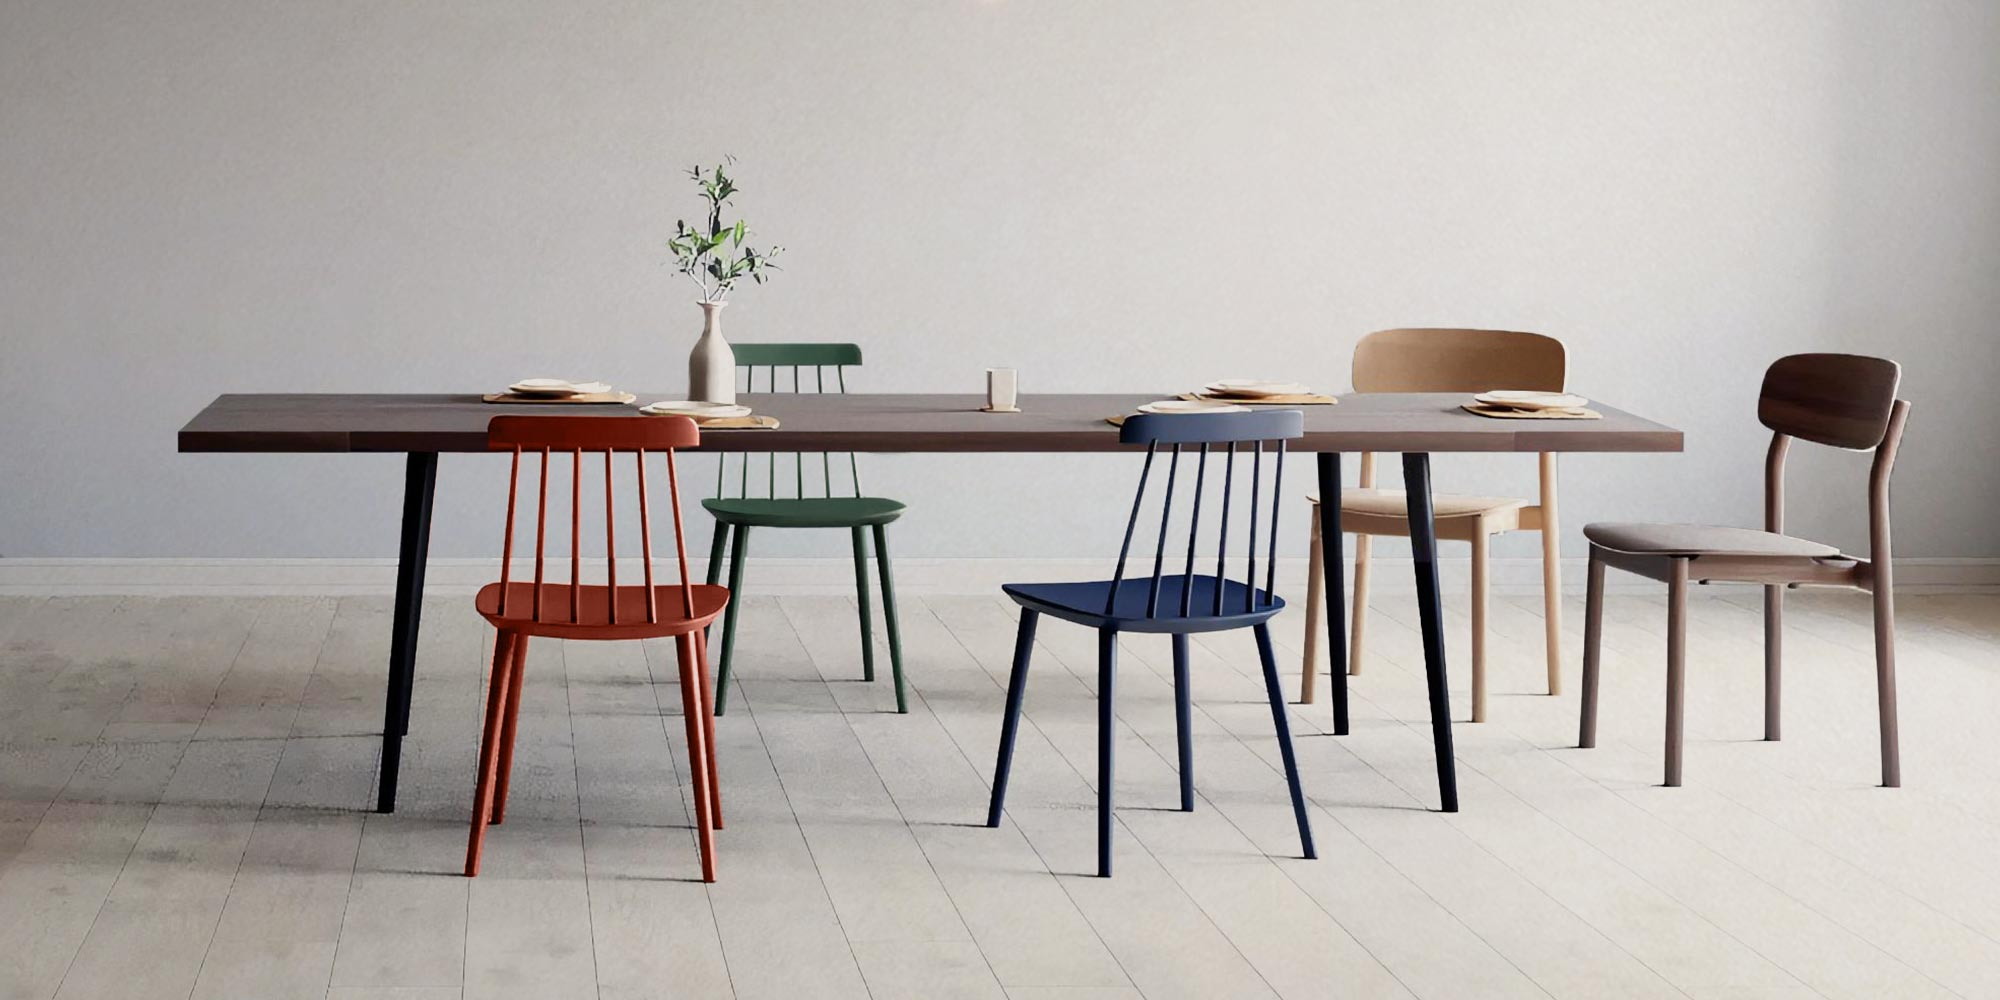 dining chairs with different designs besides a dining table